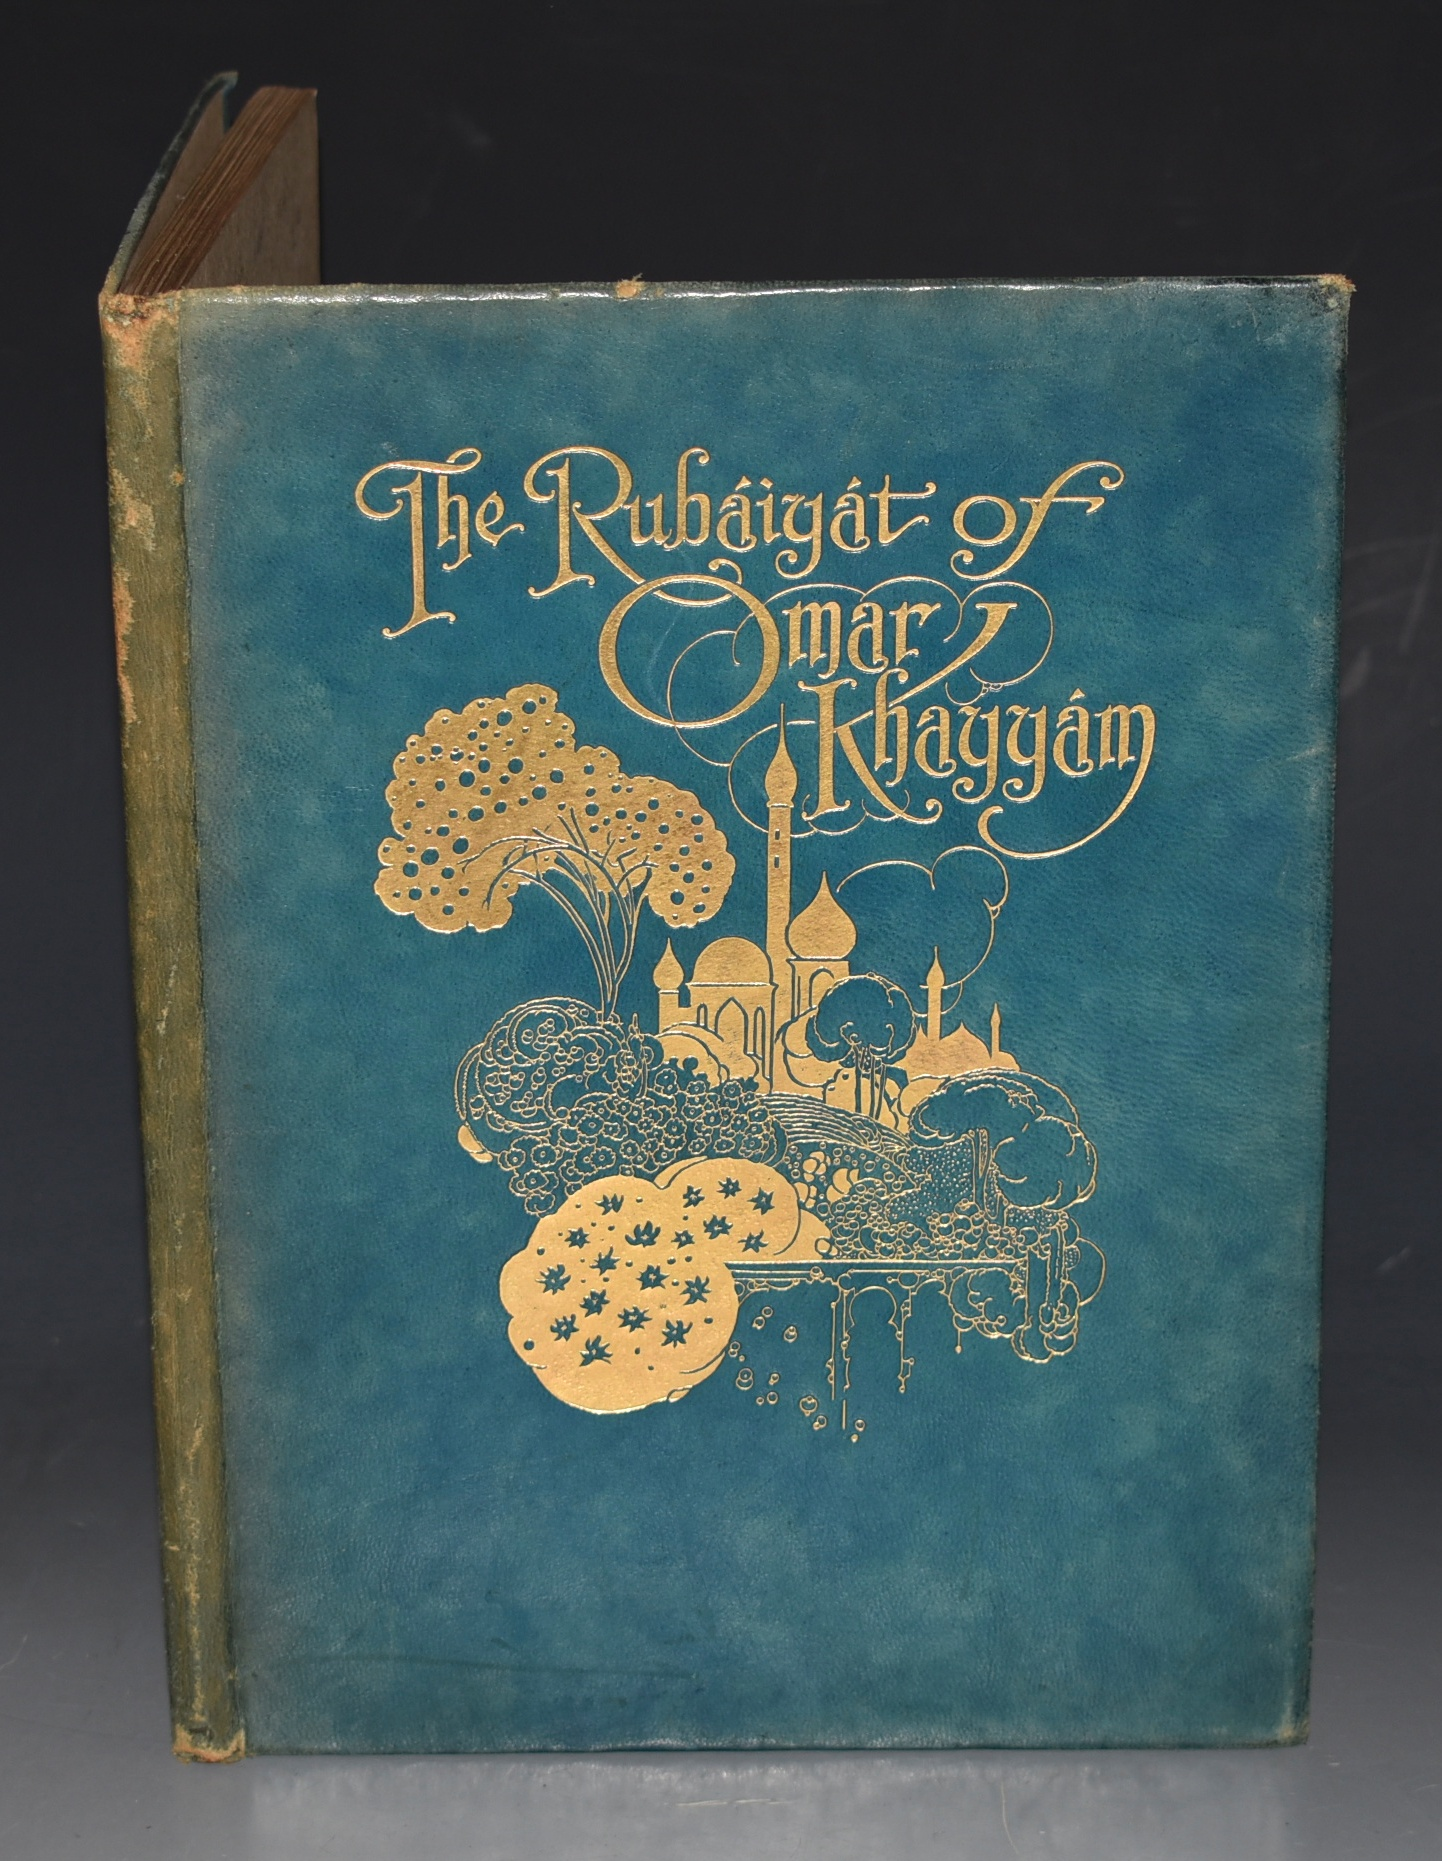 Image for The Rubaiyat of Omar Khayyam. Translated by Edward Fitzgerald, Introduction by Laurence Housman. With Colour Plates and Decorations by Charles Robinson.